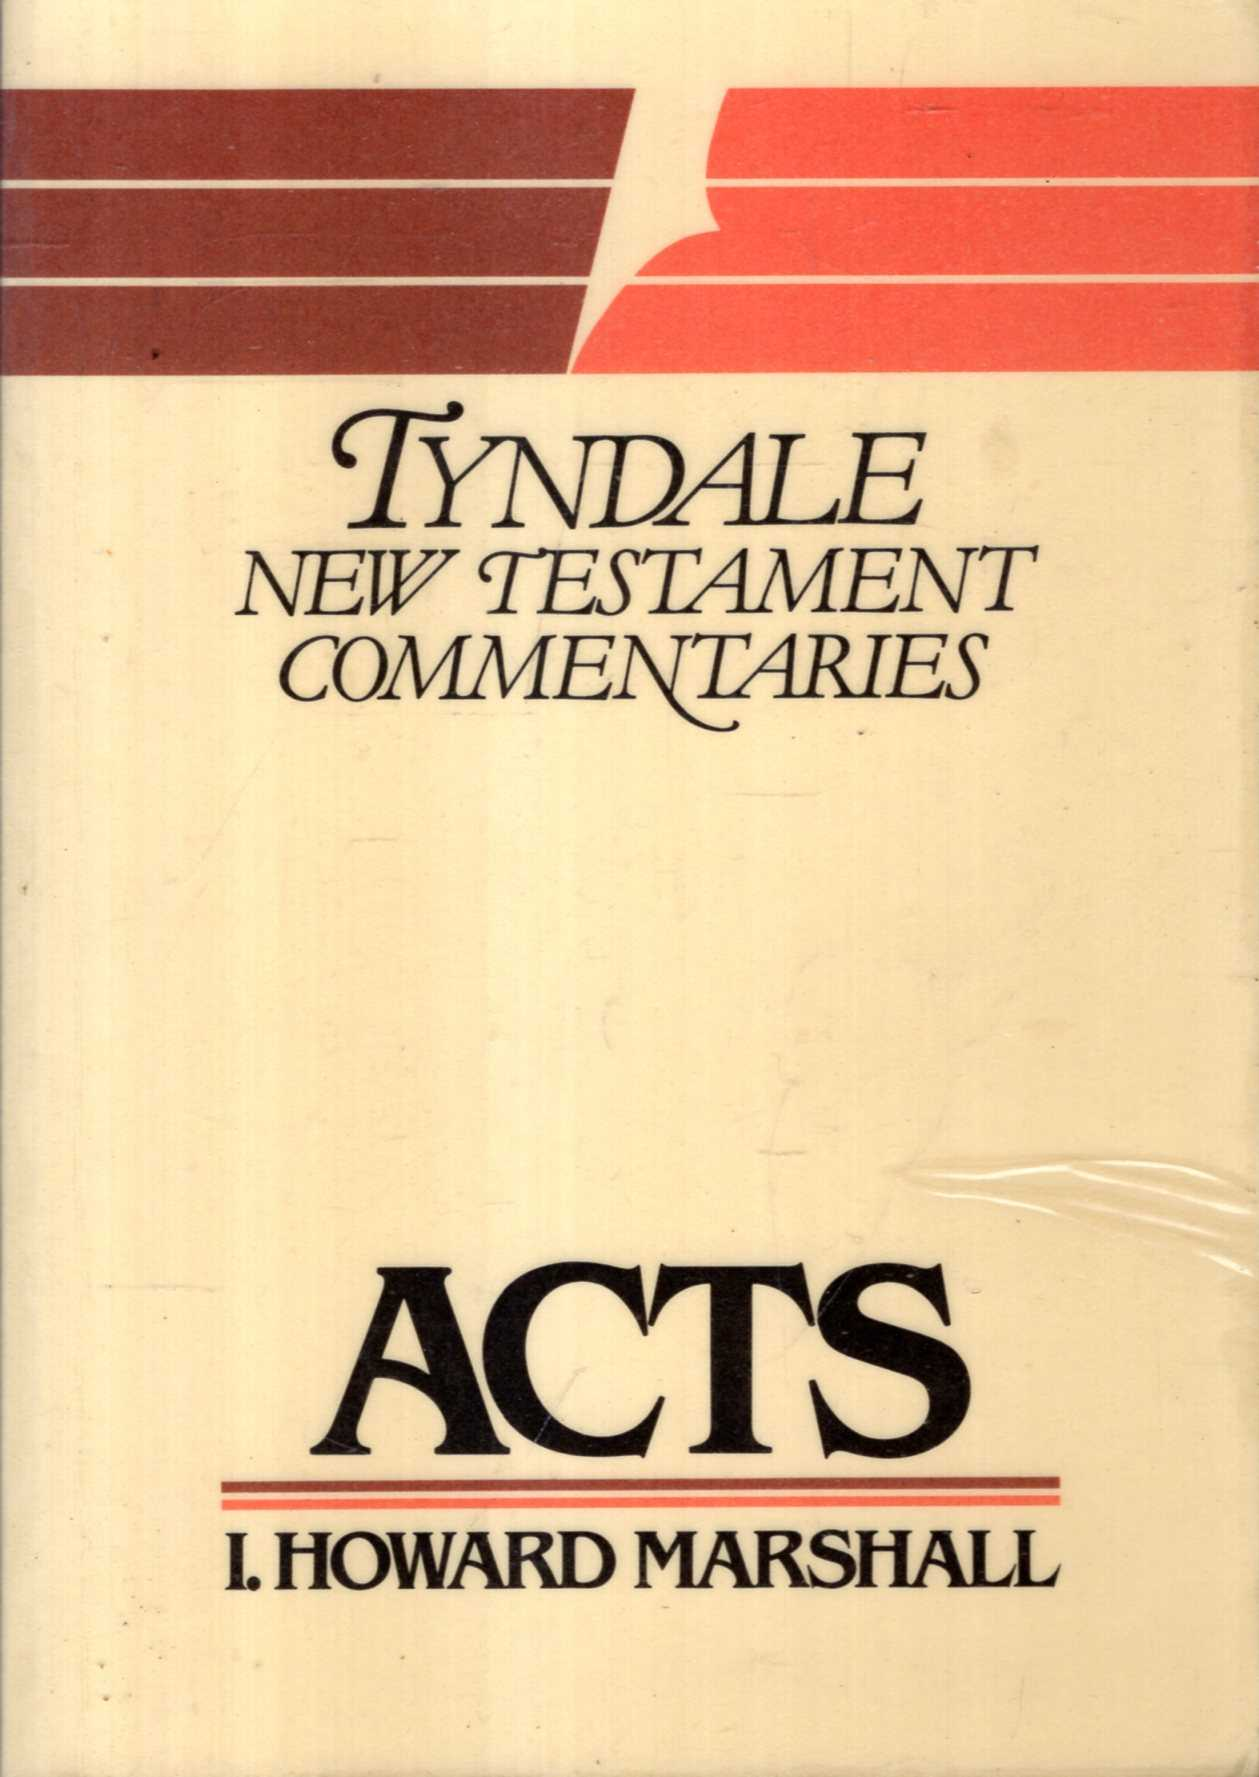 Image for The Acts of the Apostles: An Introduction and Commentary (Tyndale New Testament Commentaries)